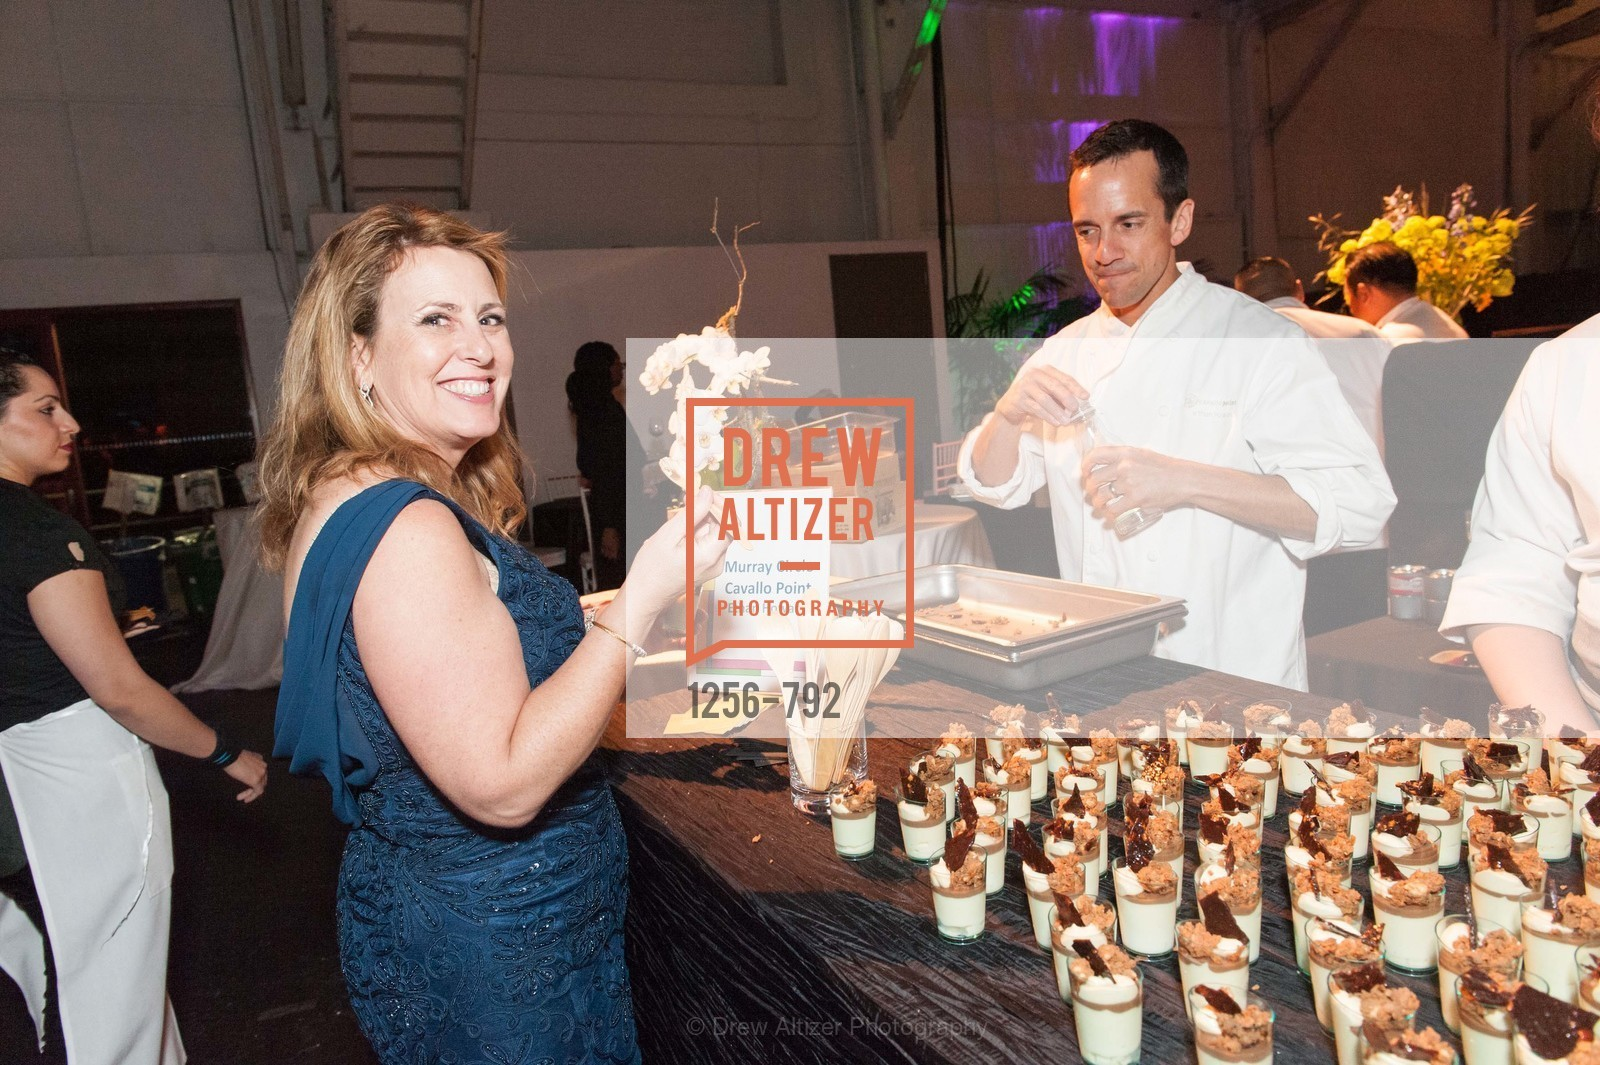 Ethan Howard, MEALS ON WHEELS OF SAN FRANCISCO'S 28th Annual Star Chefs and Vintners Gala, US, April 20th, 2015,Drew Altizer, Drew Altizer Photography, full-service agency, private events, San Francisco photographer, photographer california